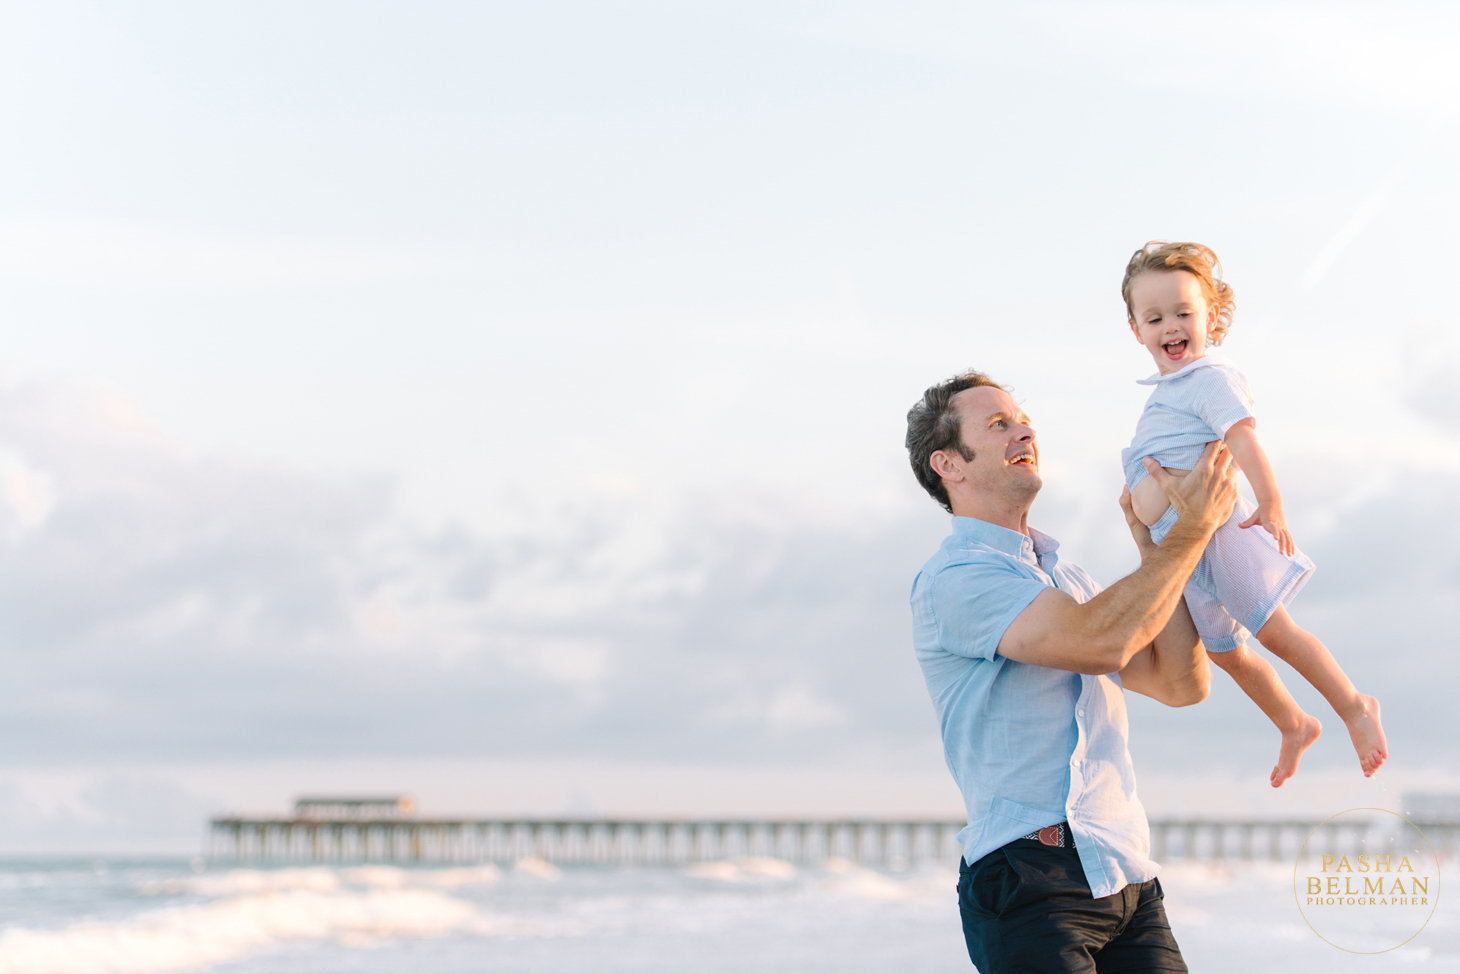 Family Photography in Myrtle Beach | Family Pictures in Myrtle Beach | Myrtle Beach and Pawleys Island Family Photography | Pasha Belman Photographers